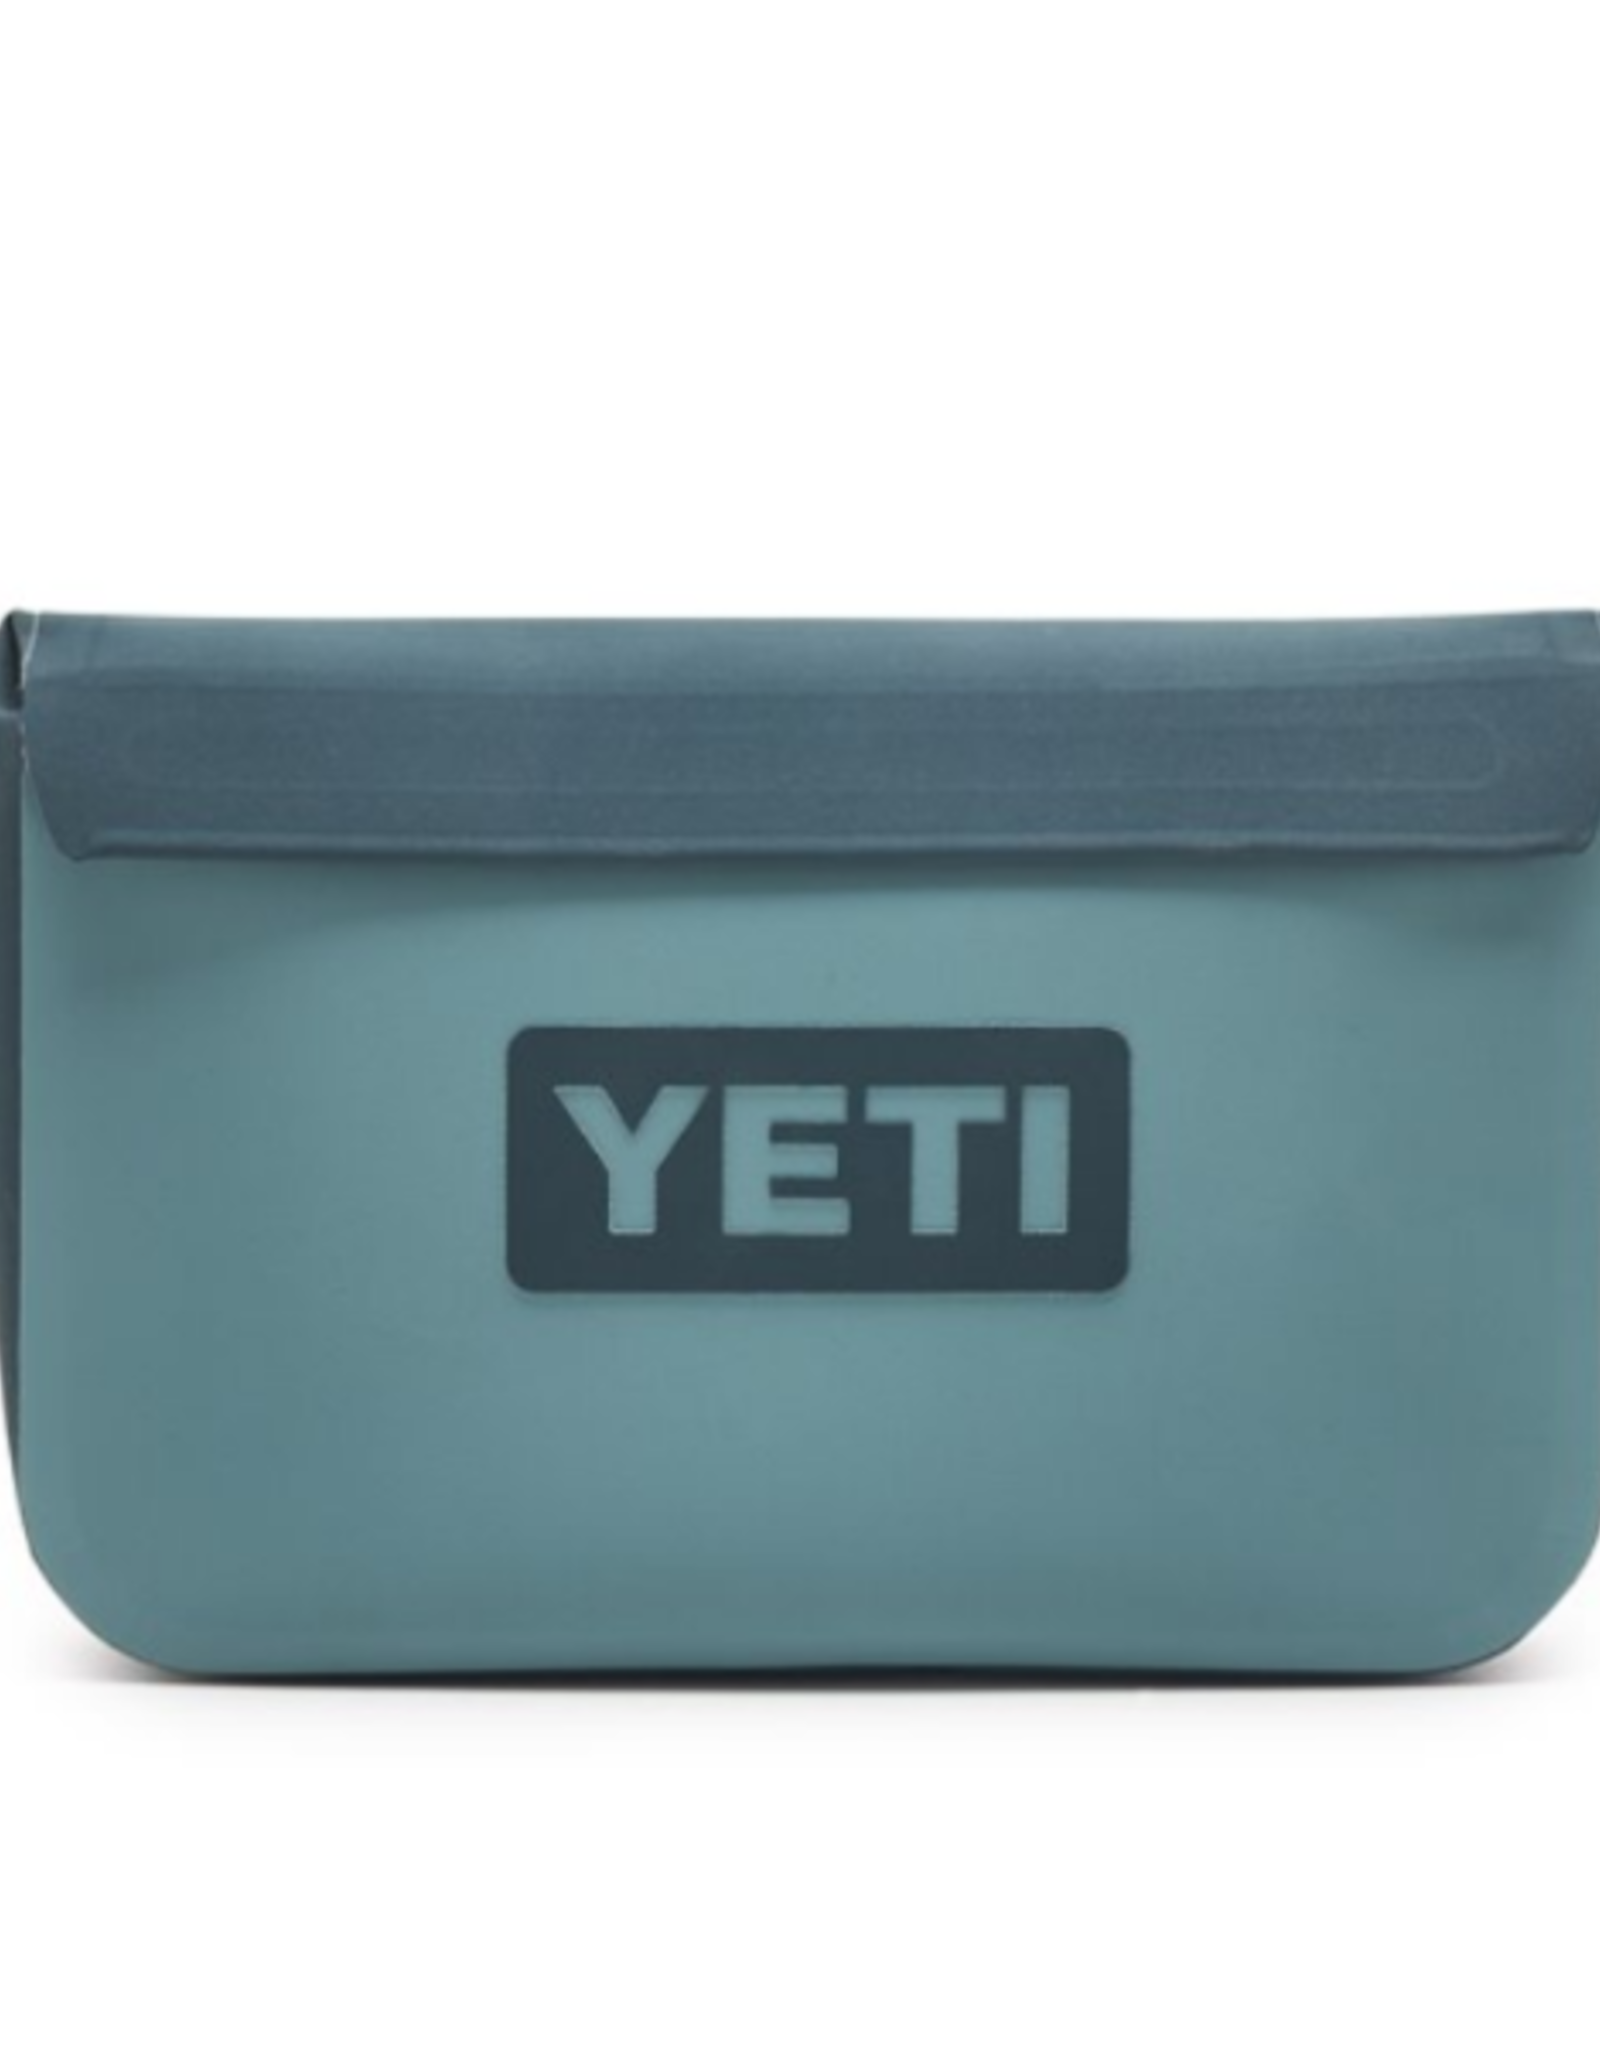 Yeti Sidekick Dry Gear Case River Green